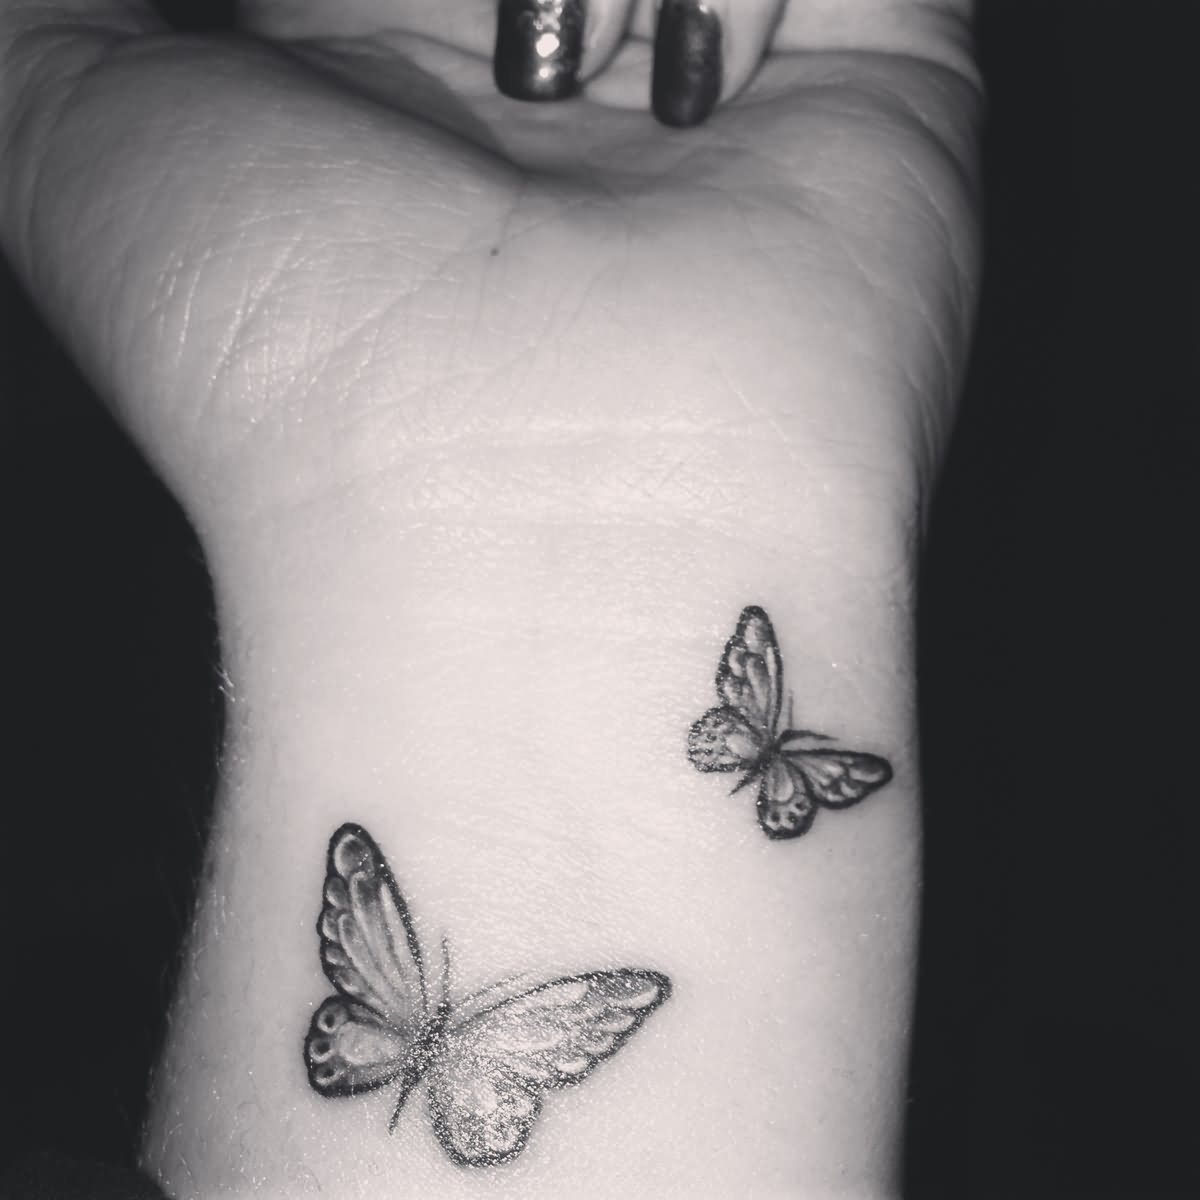 43 awesome butterfly tattoos on wrist. Black Bedroom Furniture Sets. Home Design Ideas